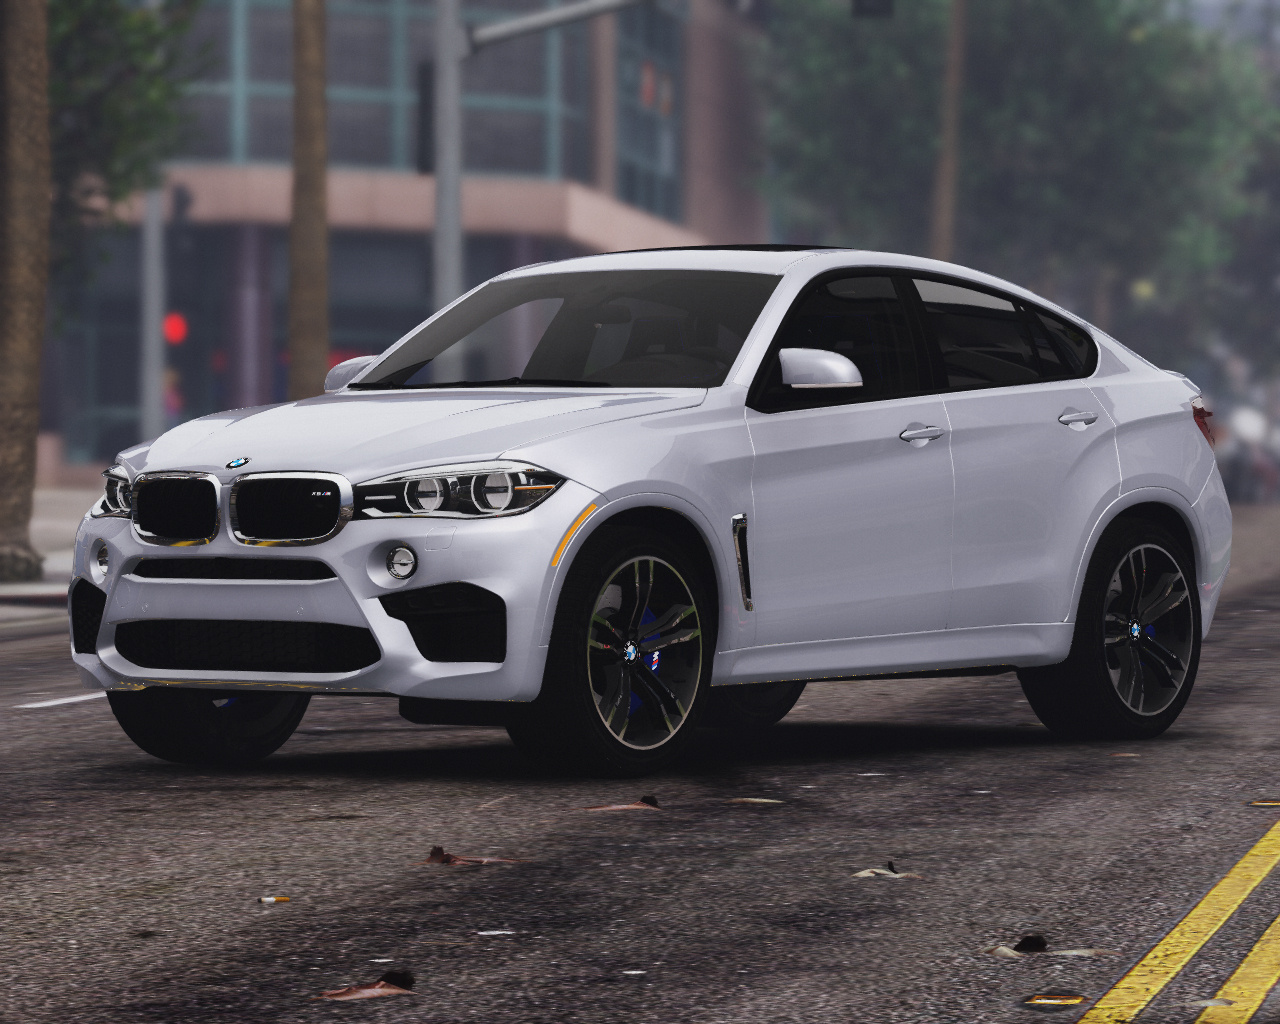 2016 bmw x6m f16 add on tuning template gta5. Black Bedroom Furniture Sets. Home Design Ideas